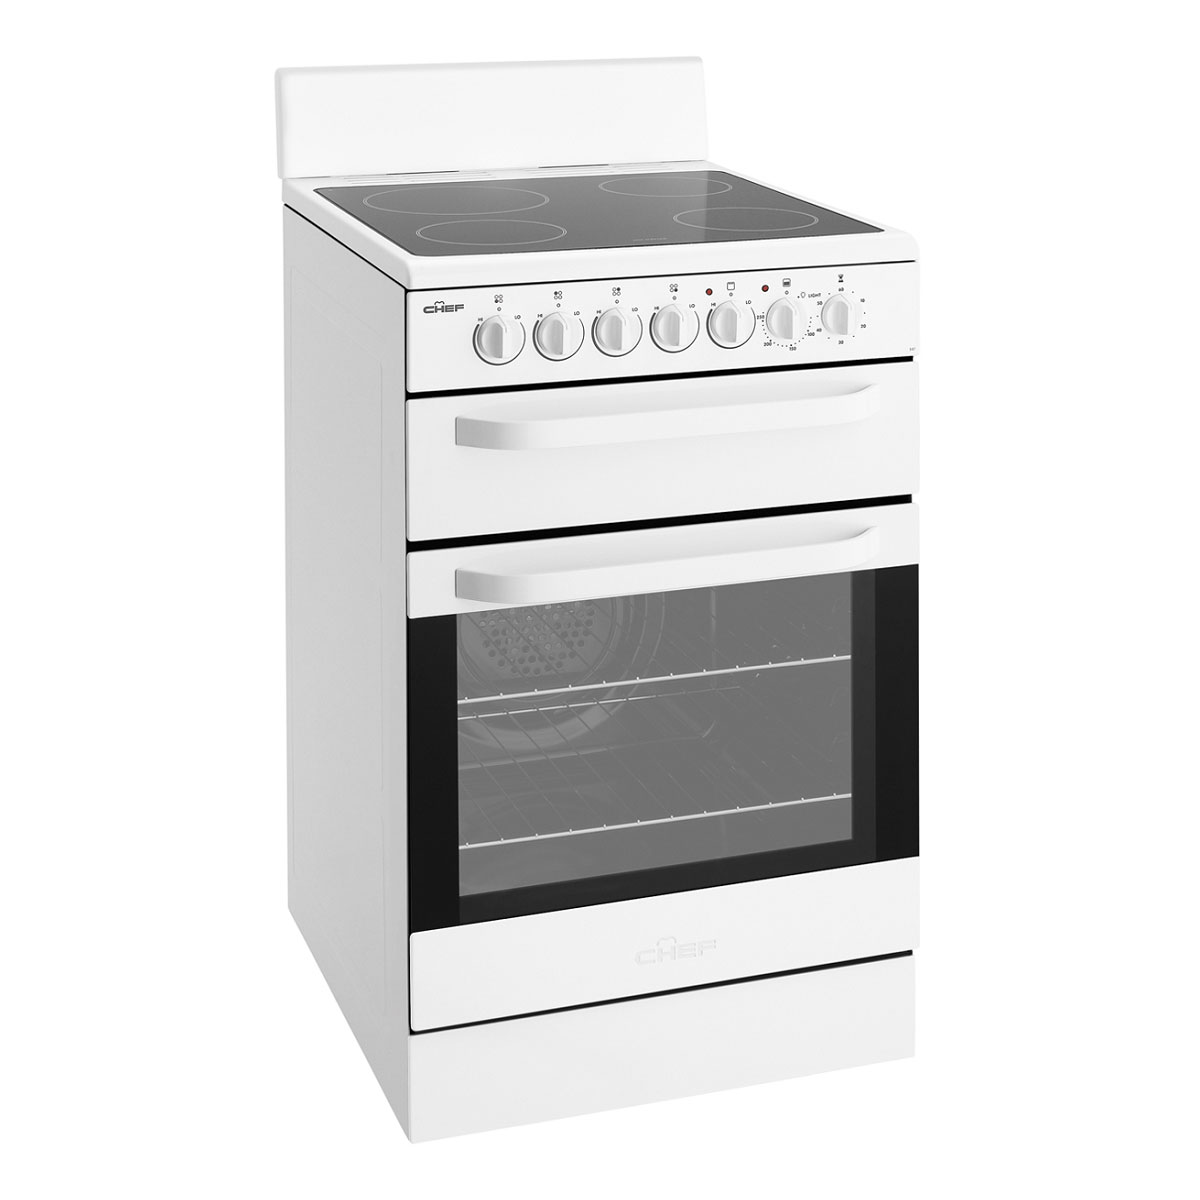 Chef CFE547WA Freestanding Electric Oven/Stove